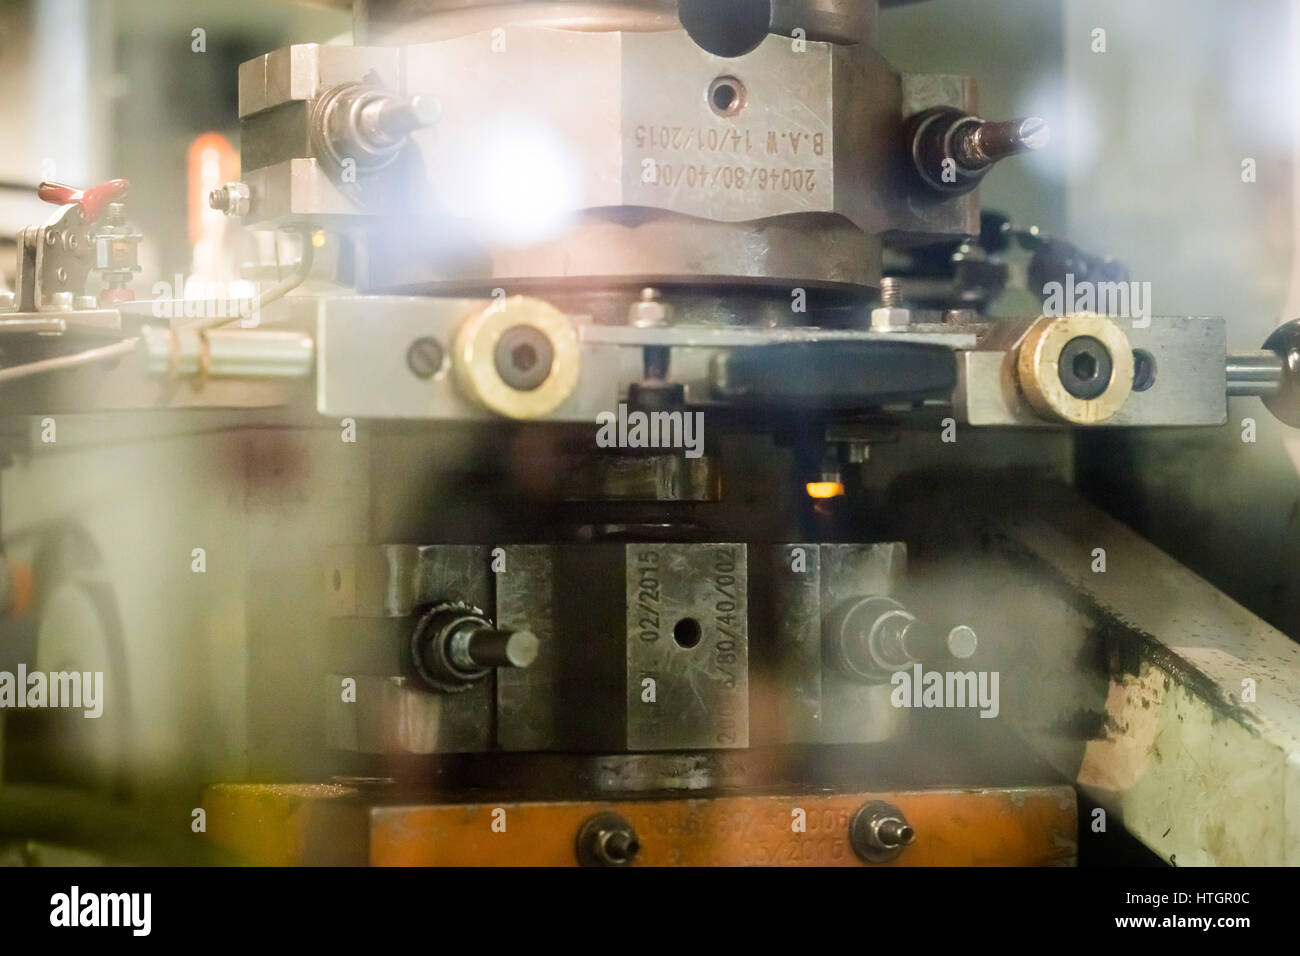 Coin Press Machine Stock Photos & Coin Press Machine Stock Images